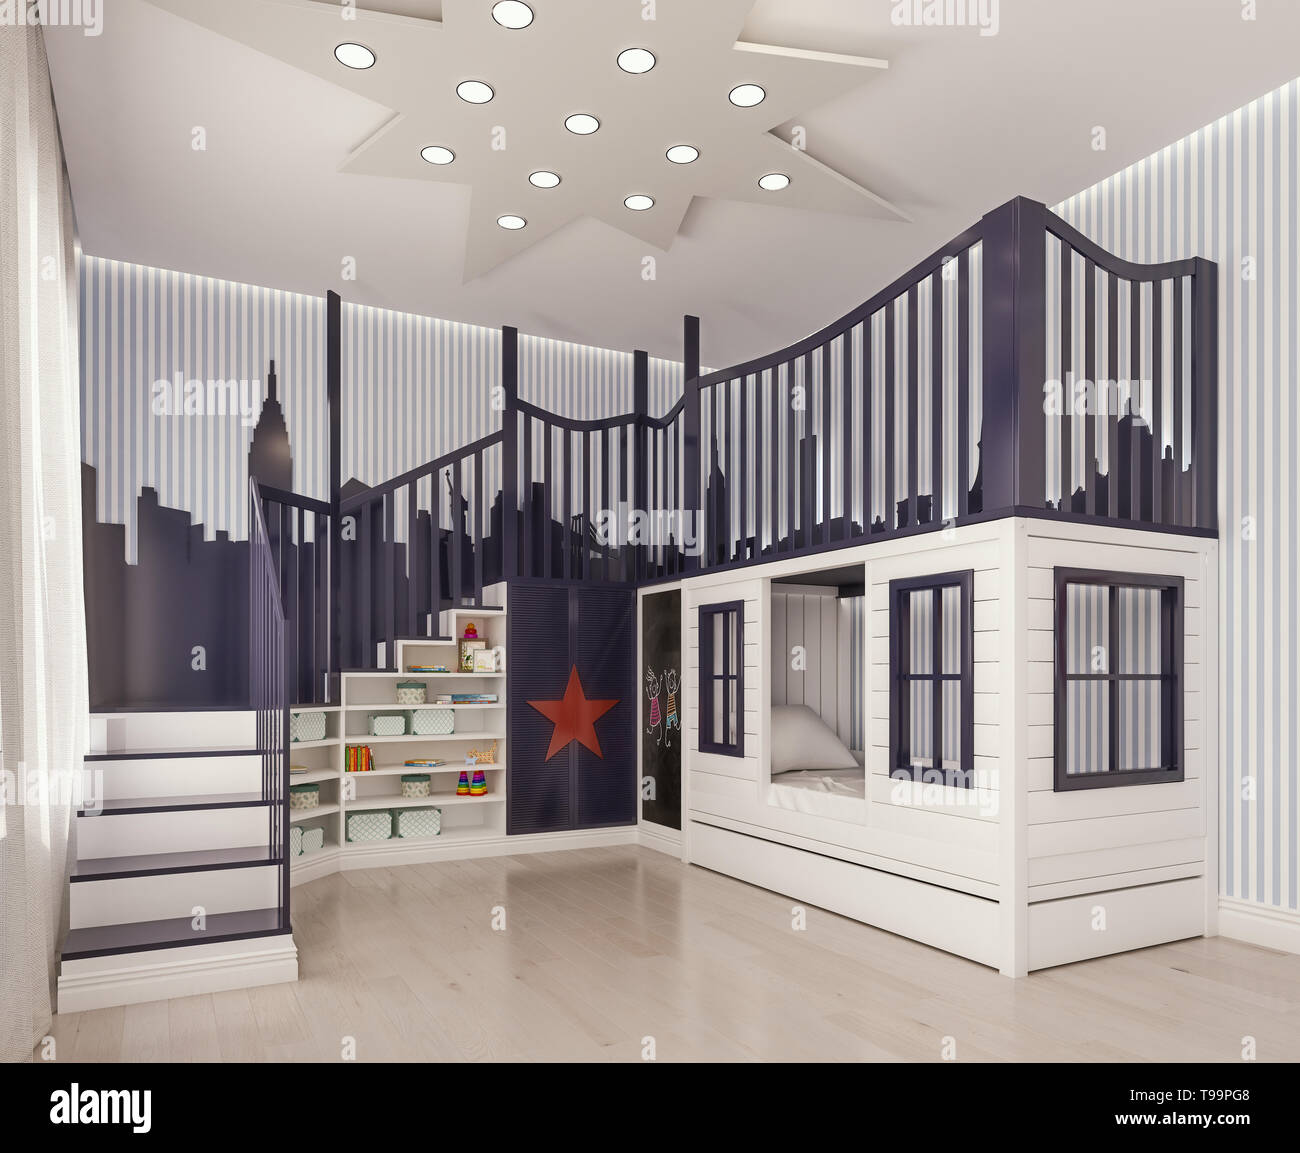 Modern Interior Design Kids Bedroom Children Room Playroom With Double Beds And Stairs Like Castle With City Decoration On Striped Walls 3d Render Stock Photo Alamy